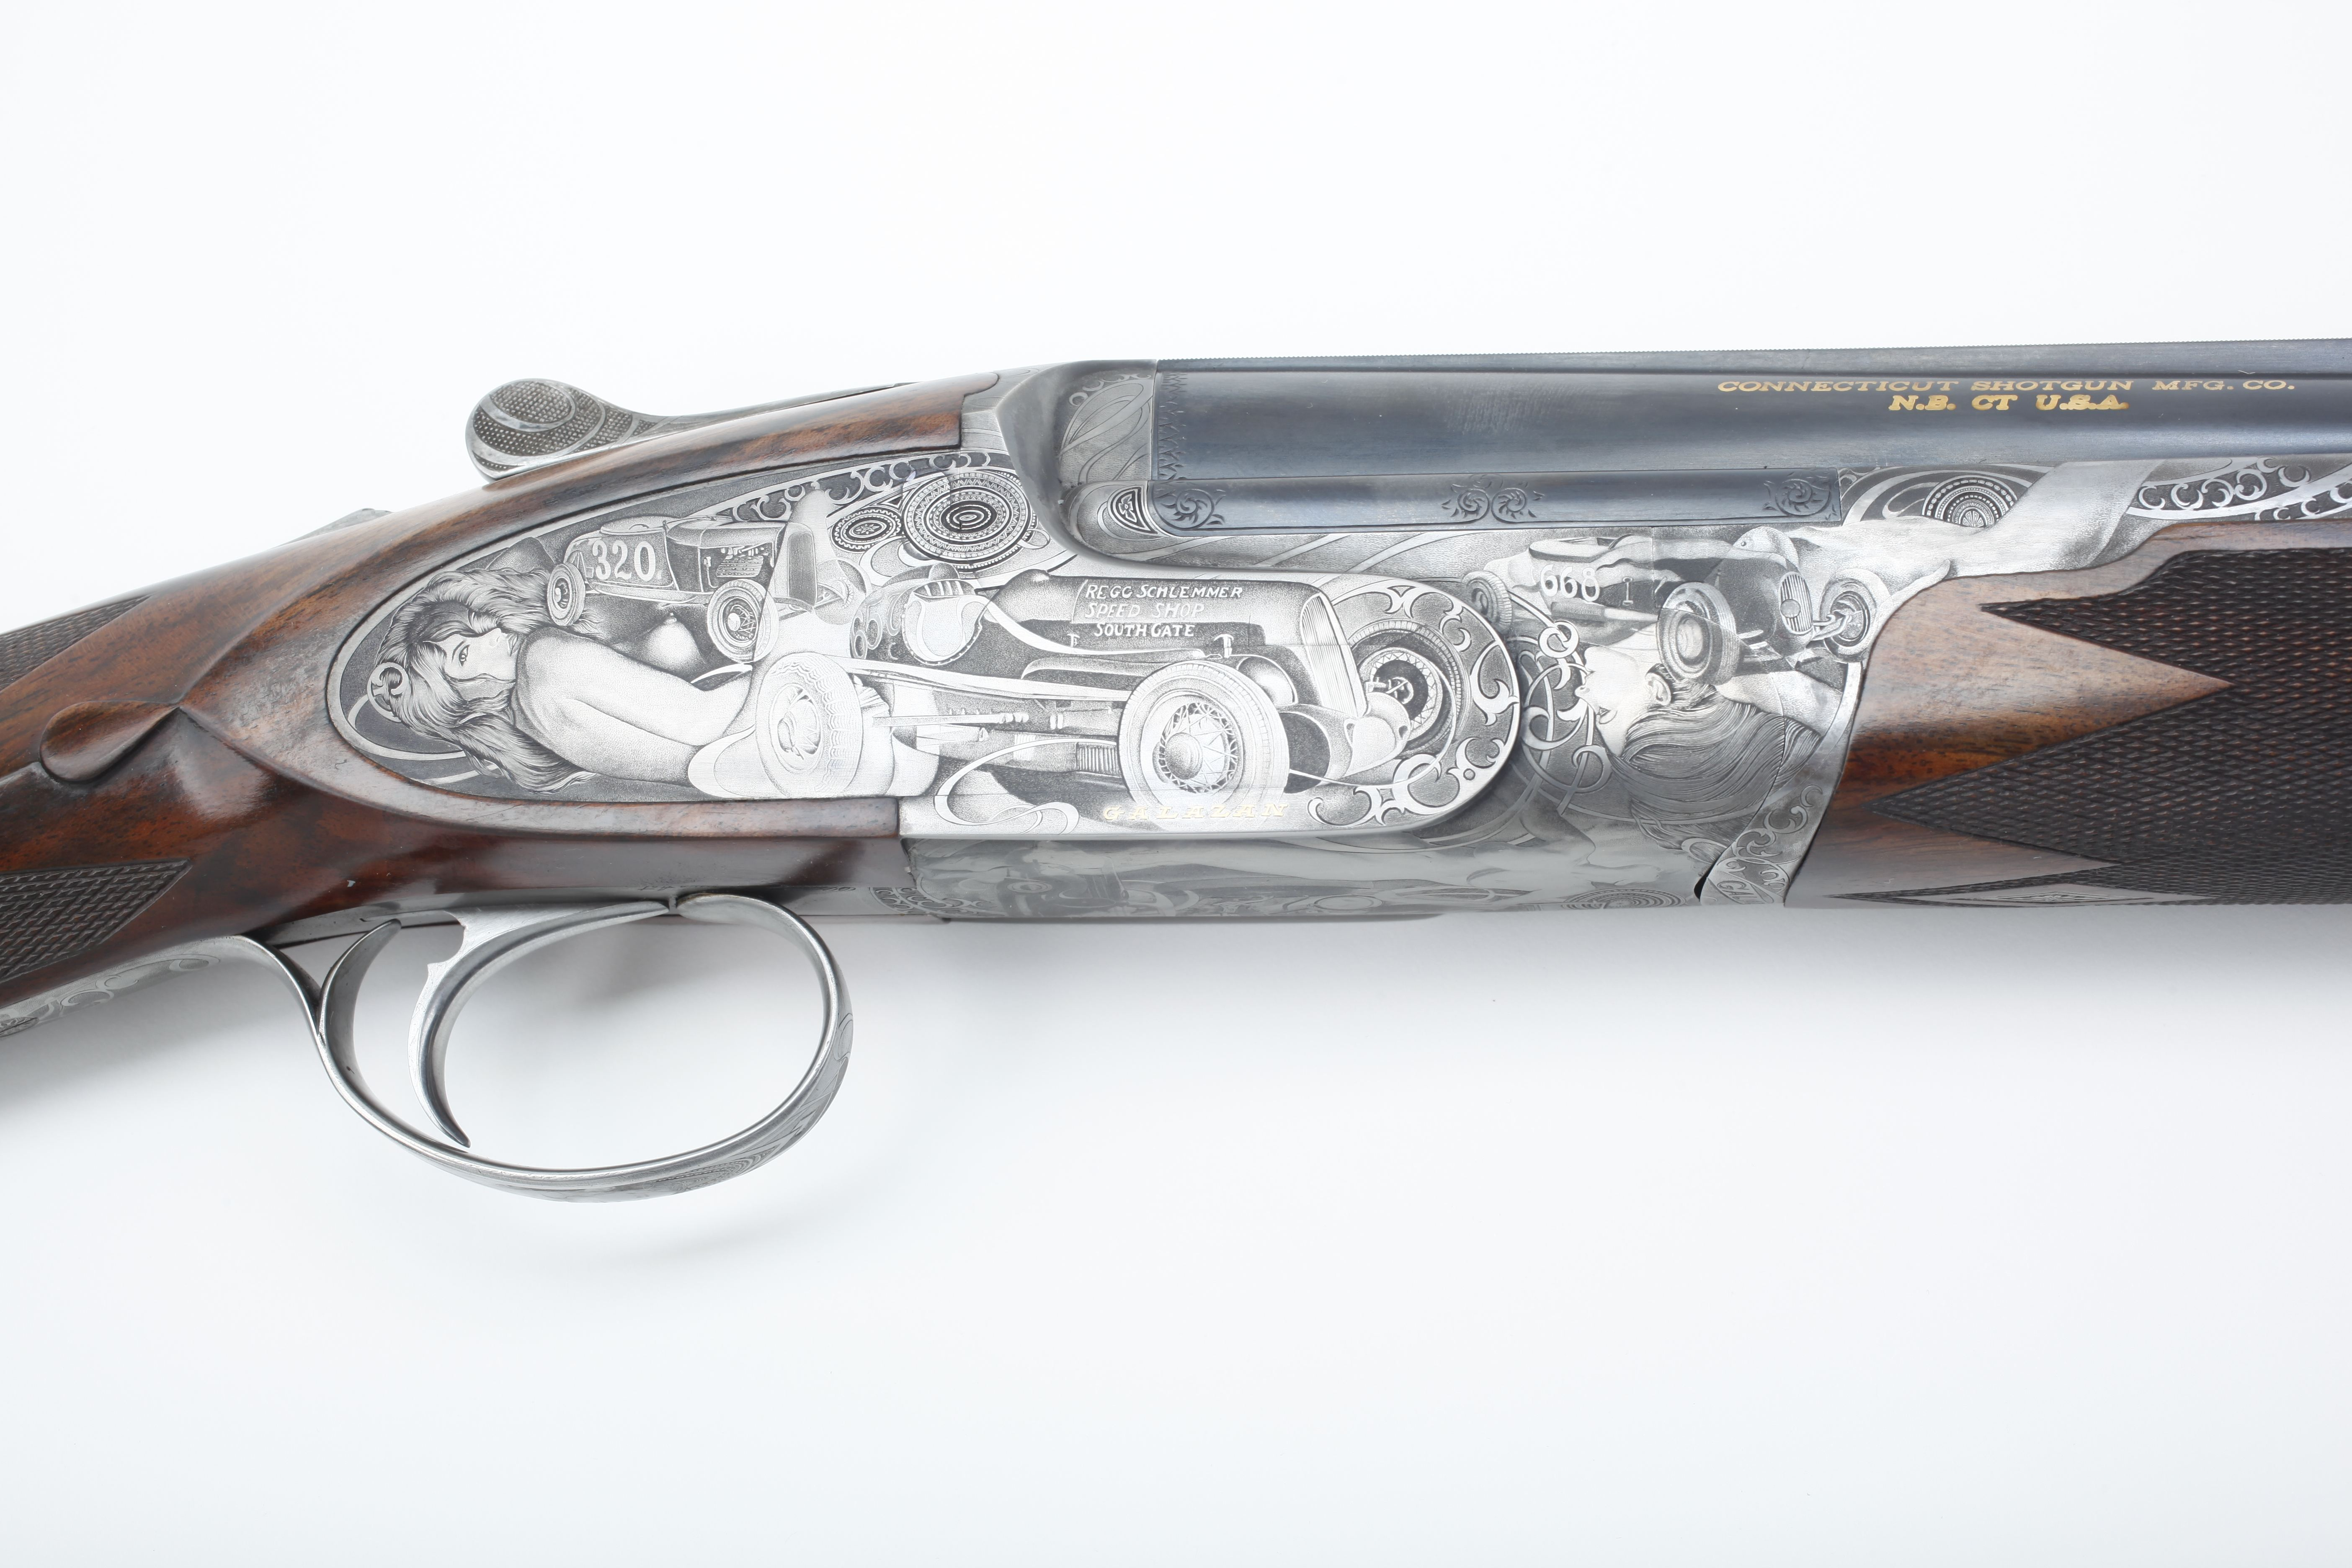 Galazan Engraved Over-Under Shotgun - 12 ga.